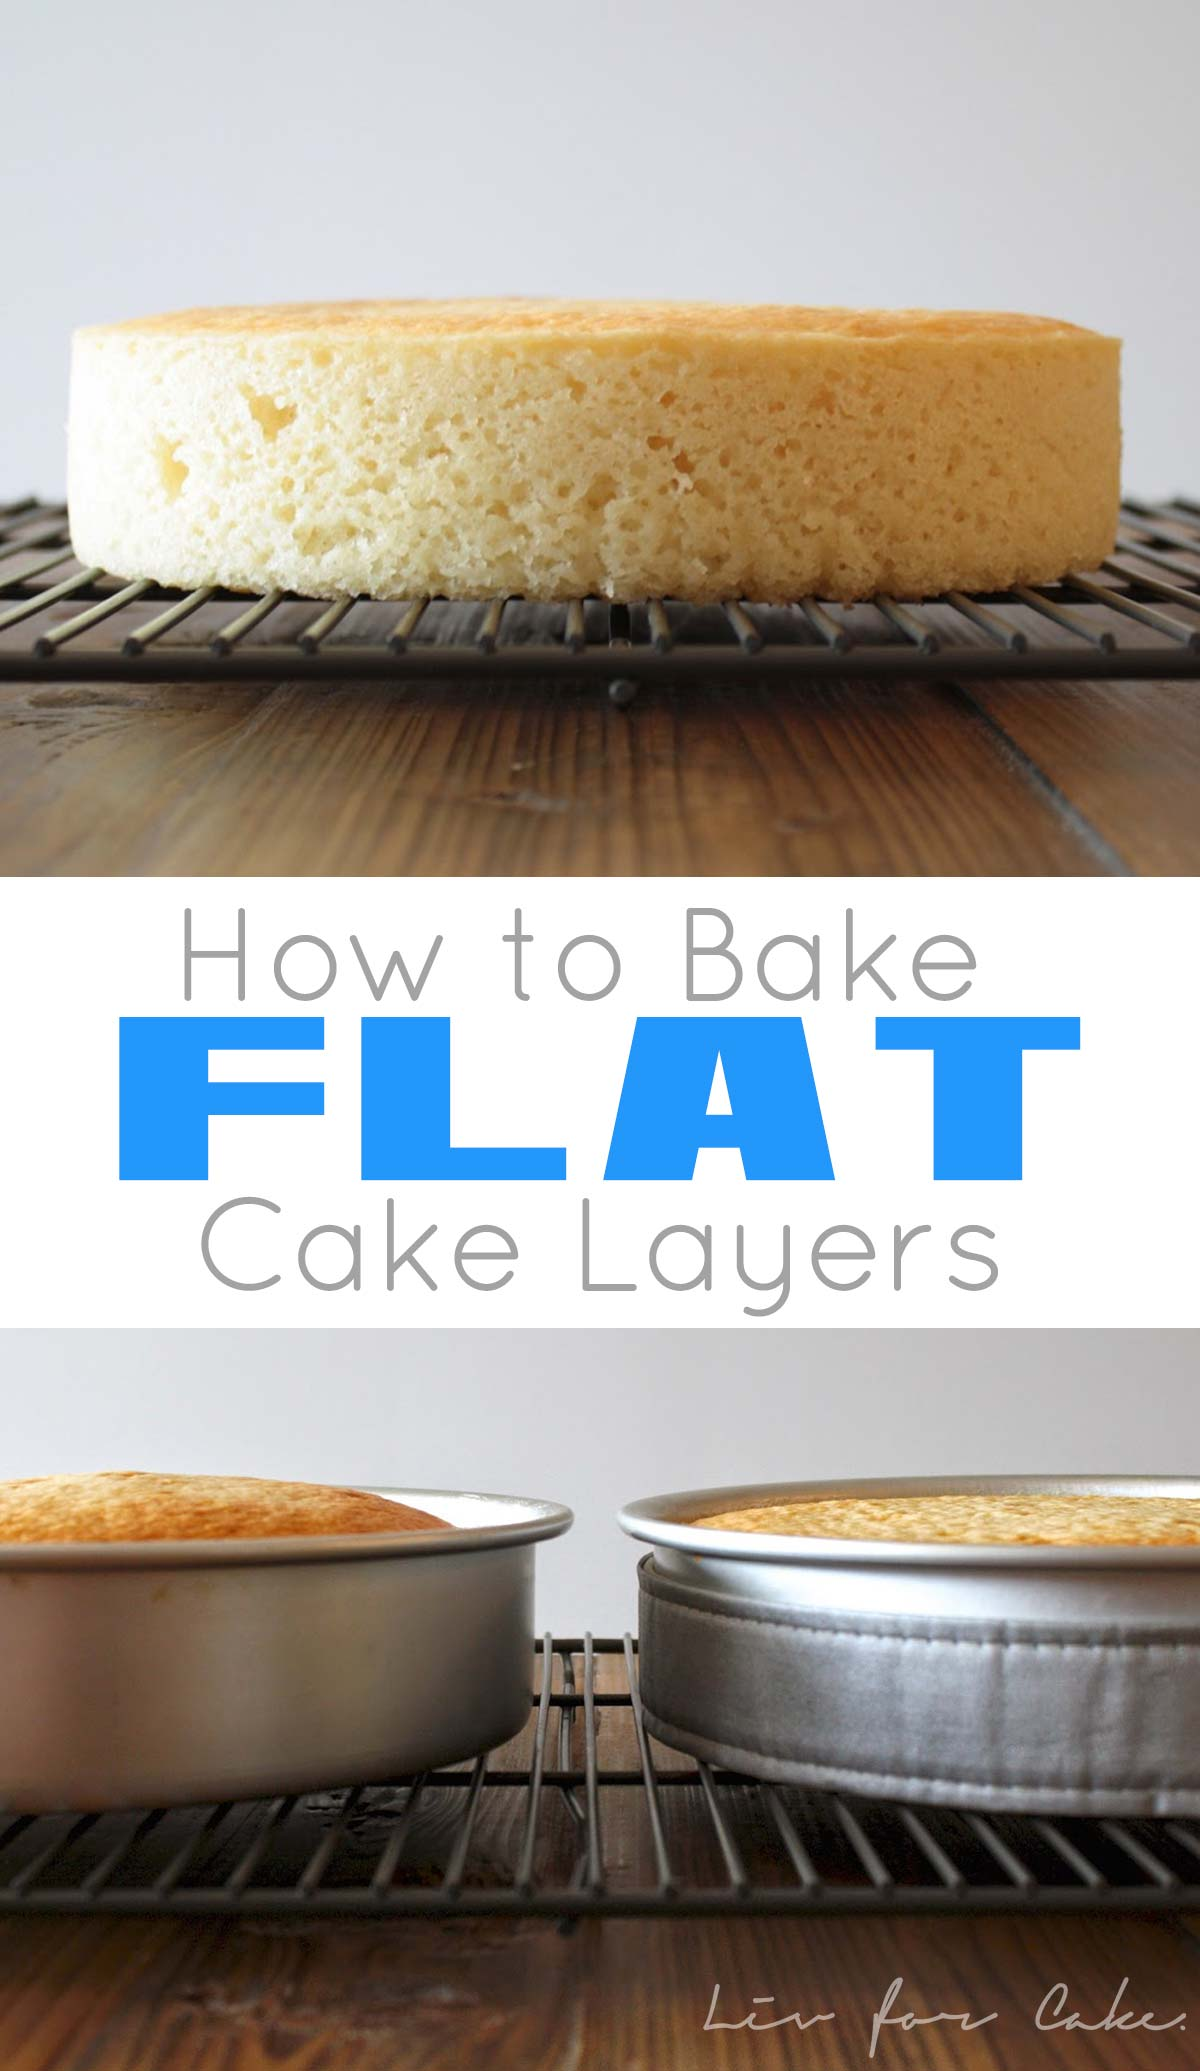 How To Cut Cake Layers Without Cutting Tool